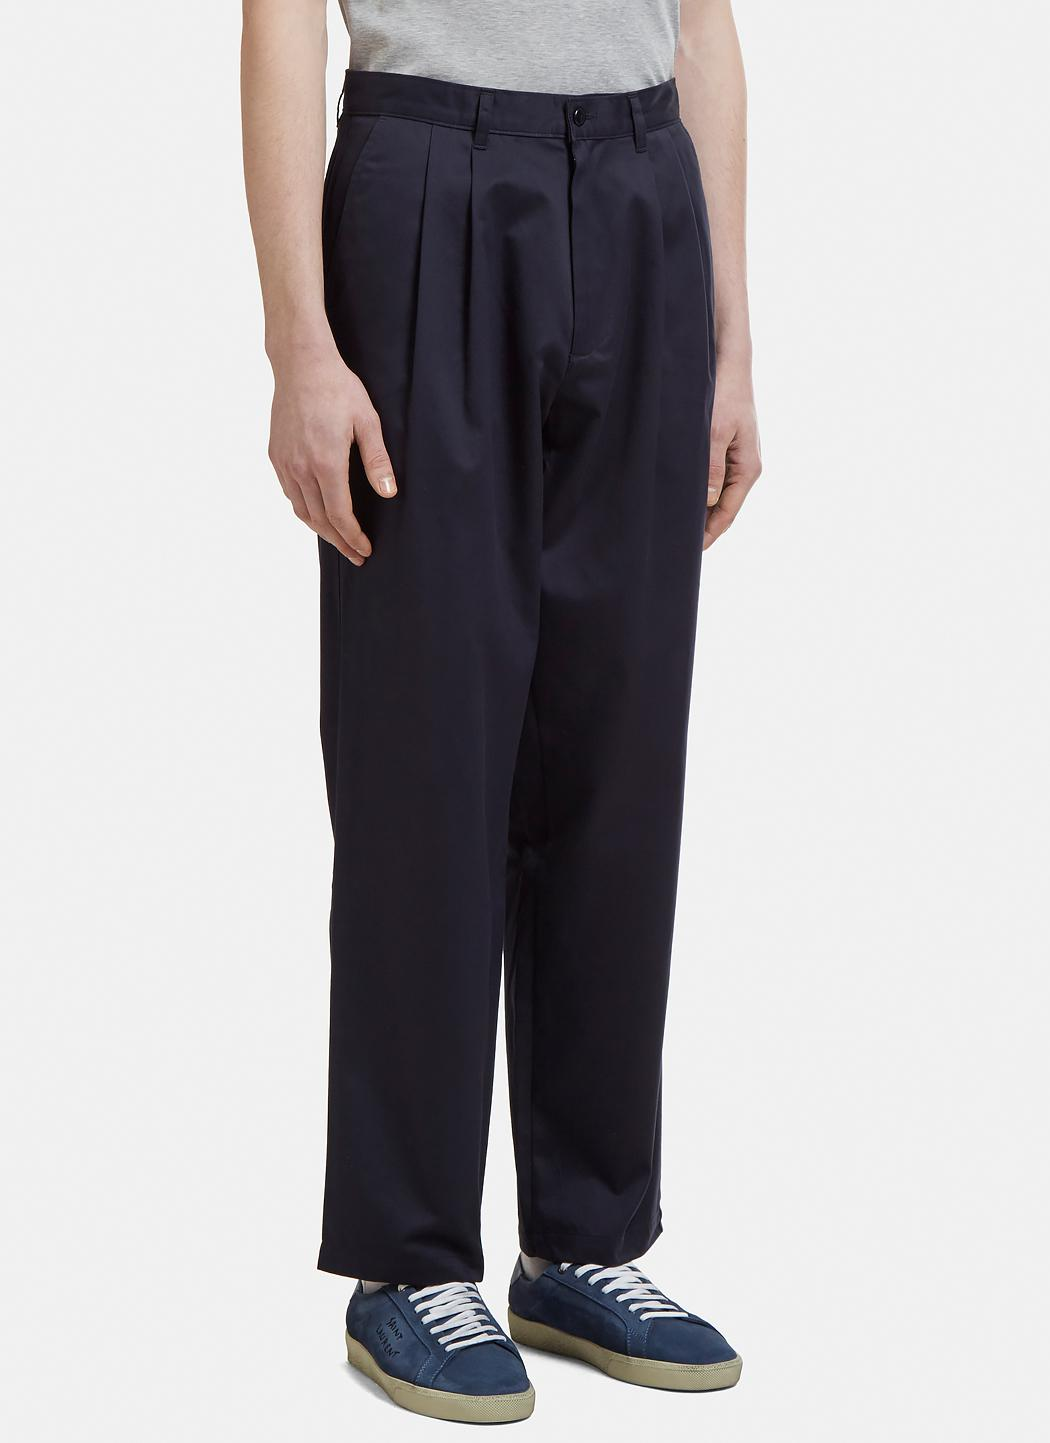 Sunshine Pay With Paypal For Sale classic pleated trousers - Blue Nine In The Morning Clearance Fake Outlet Huge Surprise 4EUSnM6